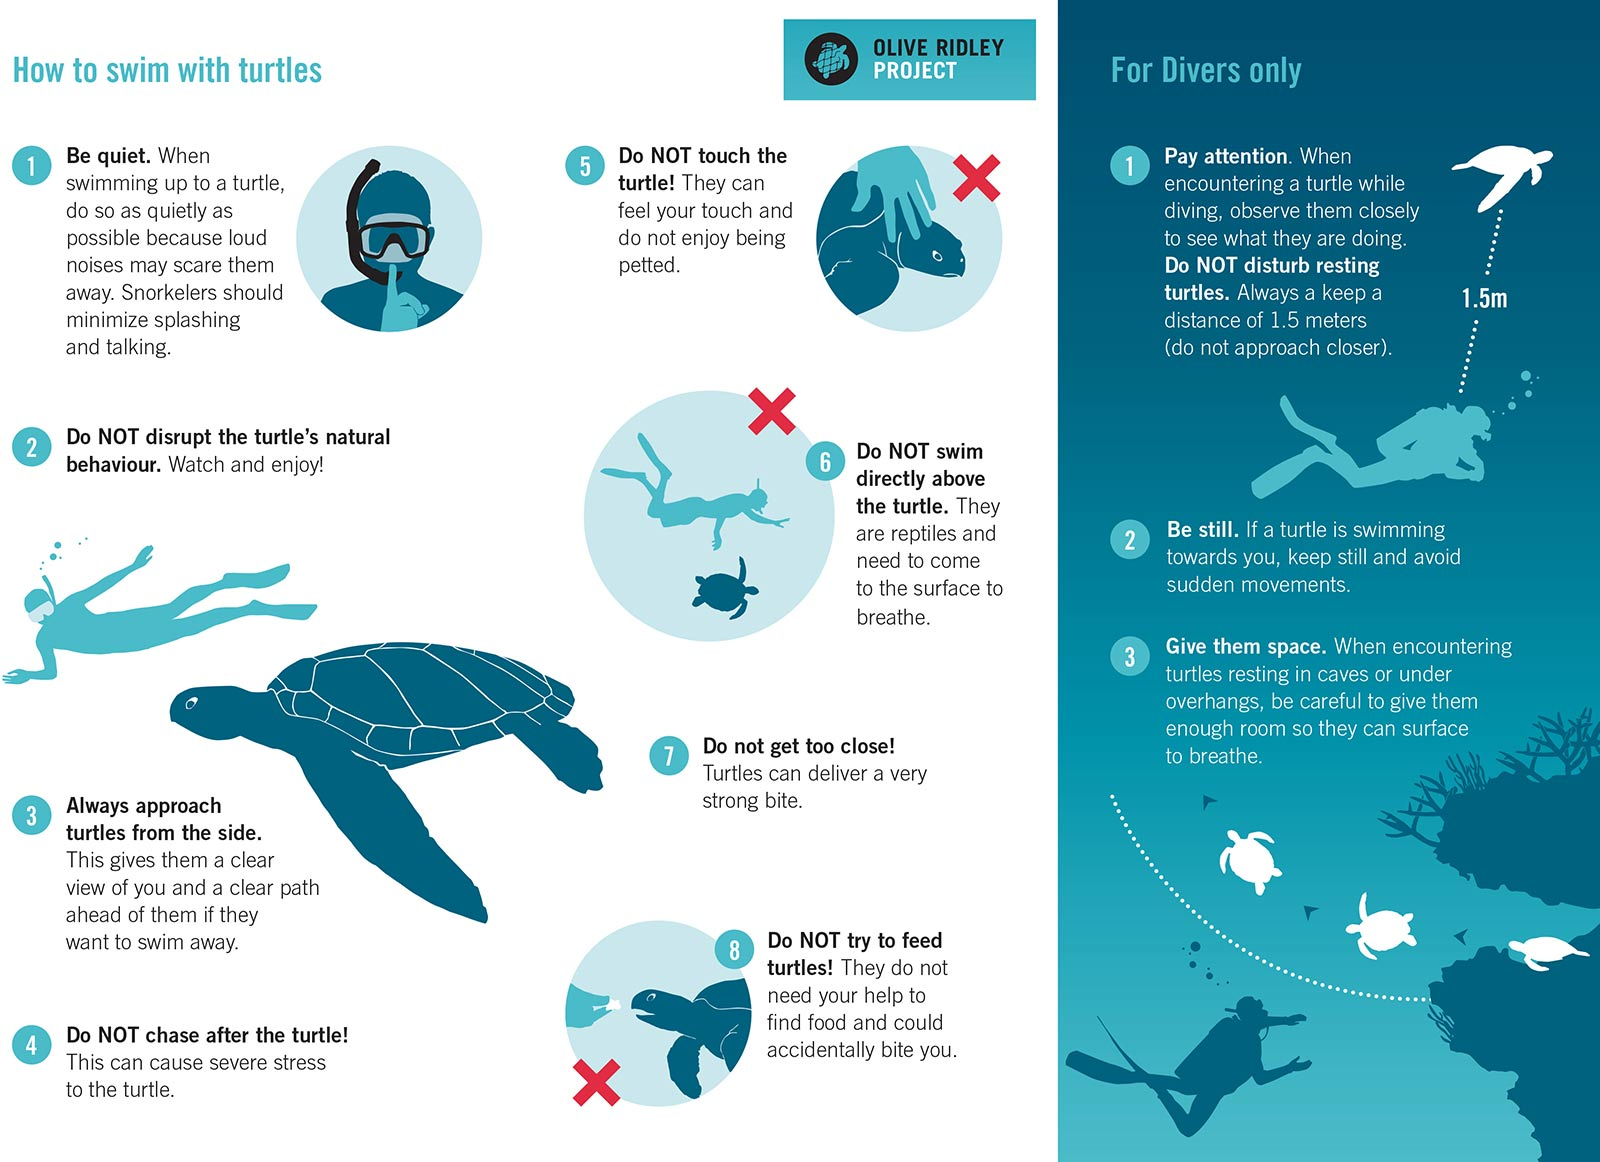 Olive Ridley Project Turtles